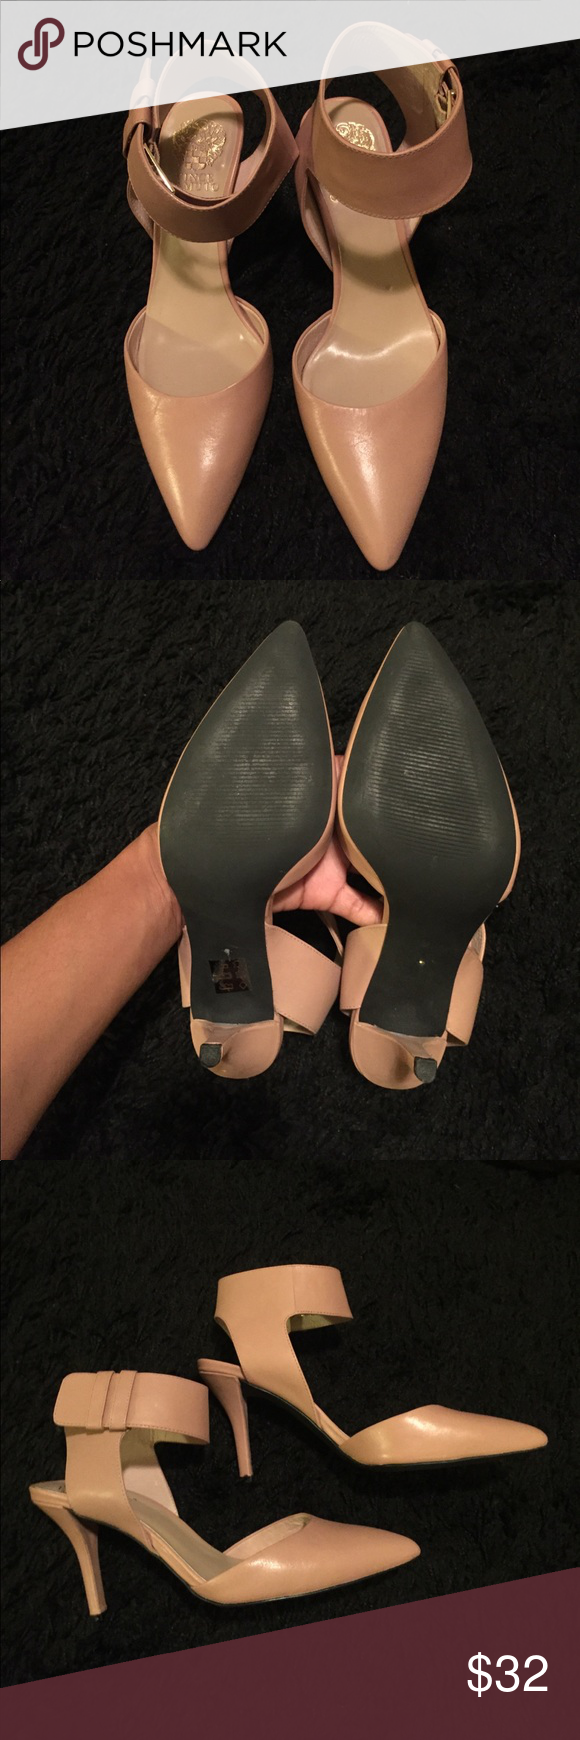 Vince Camuto Pumps Gently worn Vince Camuto Pumps, great for work! Fits like a 7.5. Vince Camuto Shoes Heels